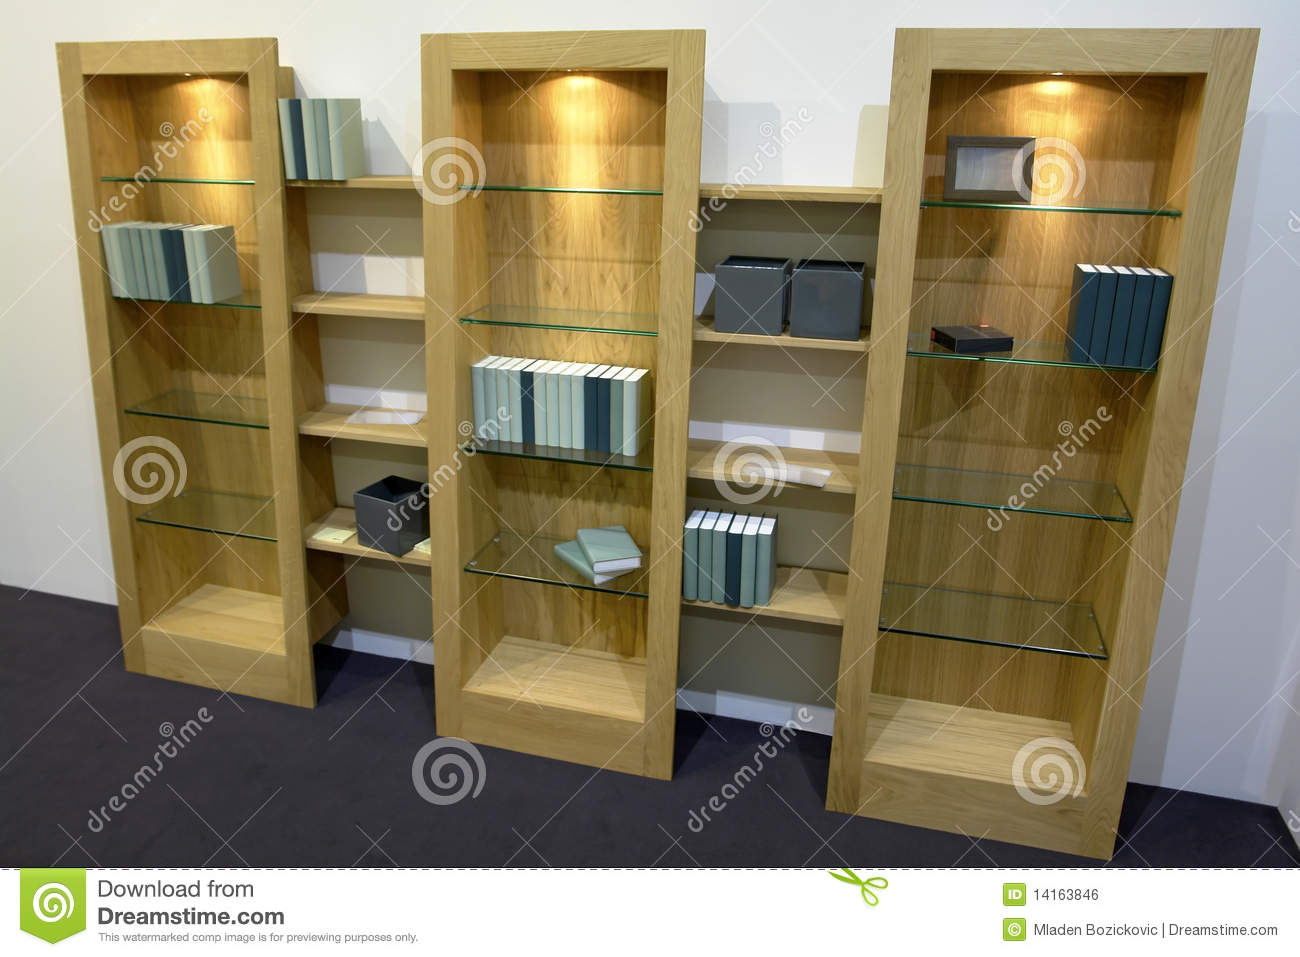 Download Cabinets With Glass Shelves Stock Photo   Image Of Book, Style:  14163846